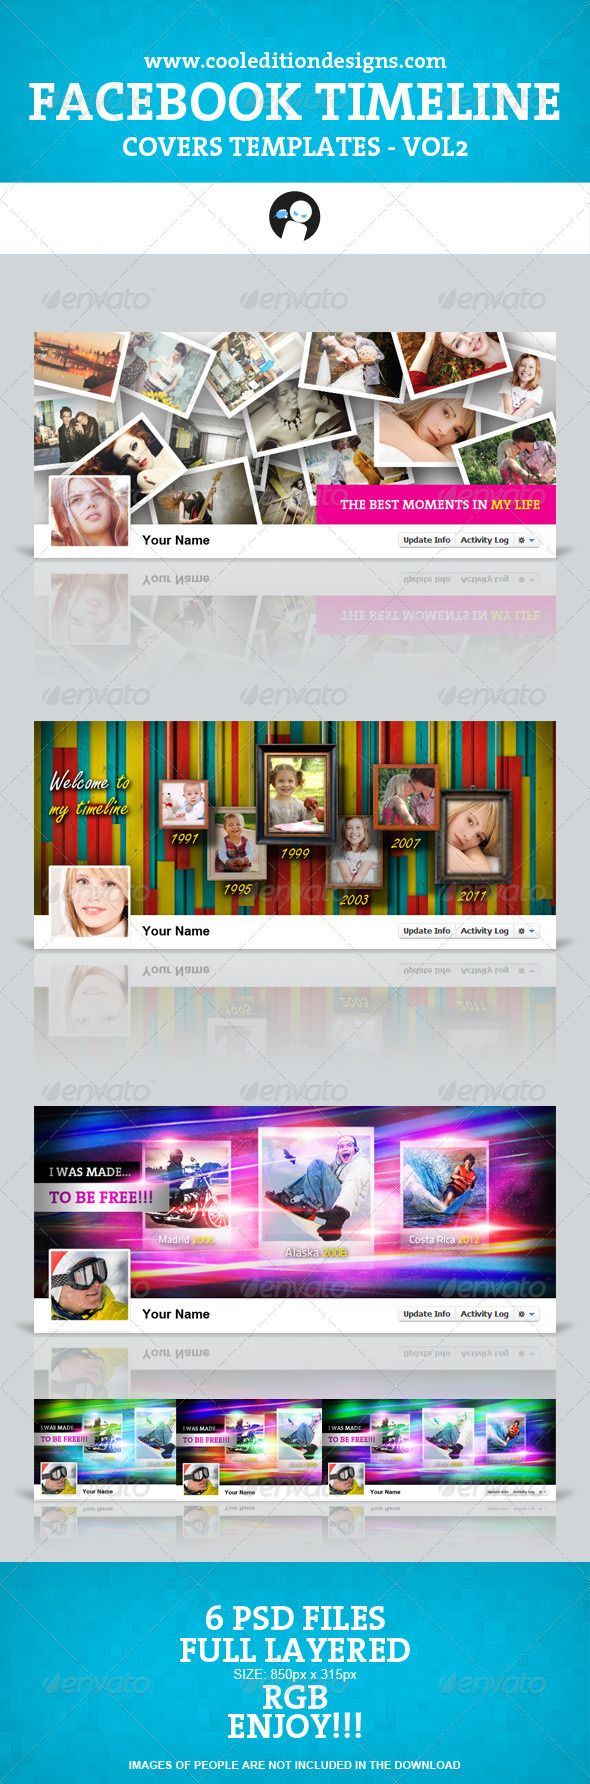 22 best images about facebook covers templates on pinterest